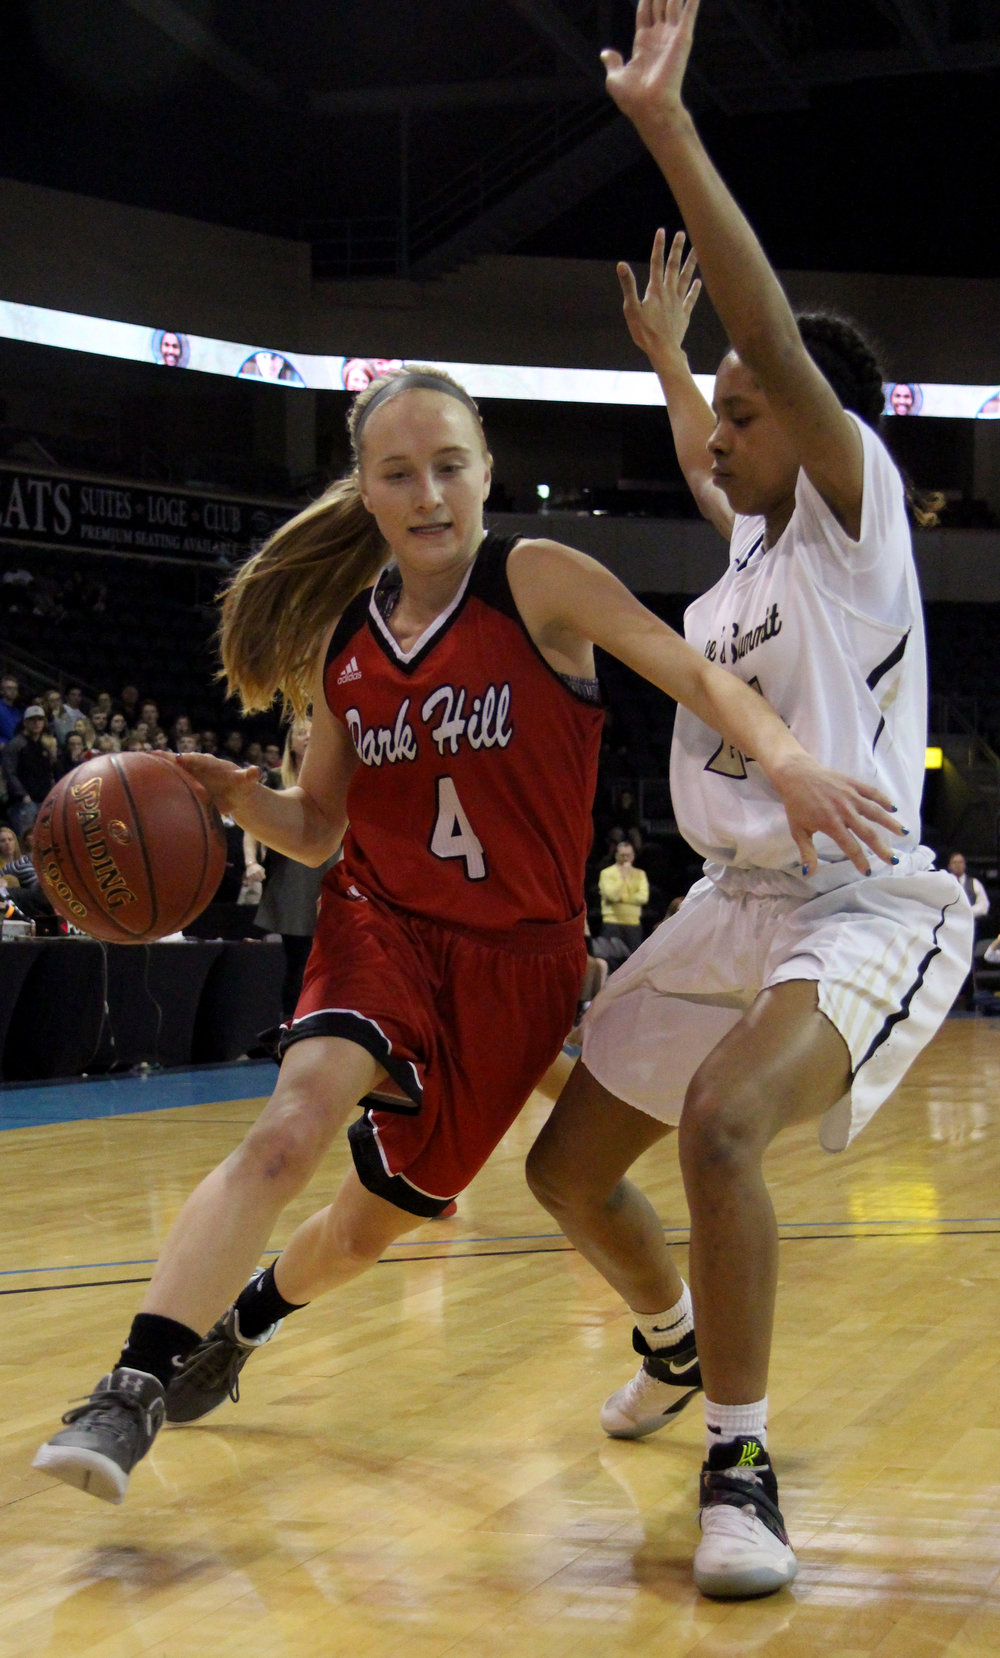 ROSS MARTIN/Citizen photo Park Hill junior guard Alison Walls, left, dribbles around a Lee's Summit defender in a Class 5 quarterfinal matchup Saturday, March 11 in Independence, Mo.